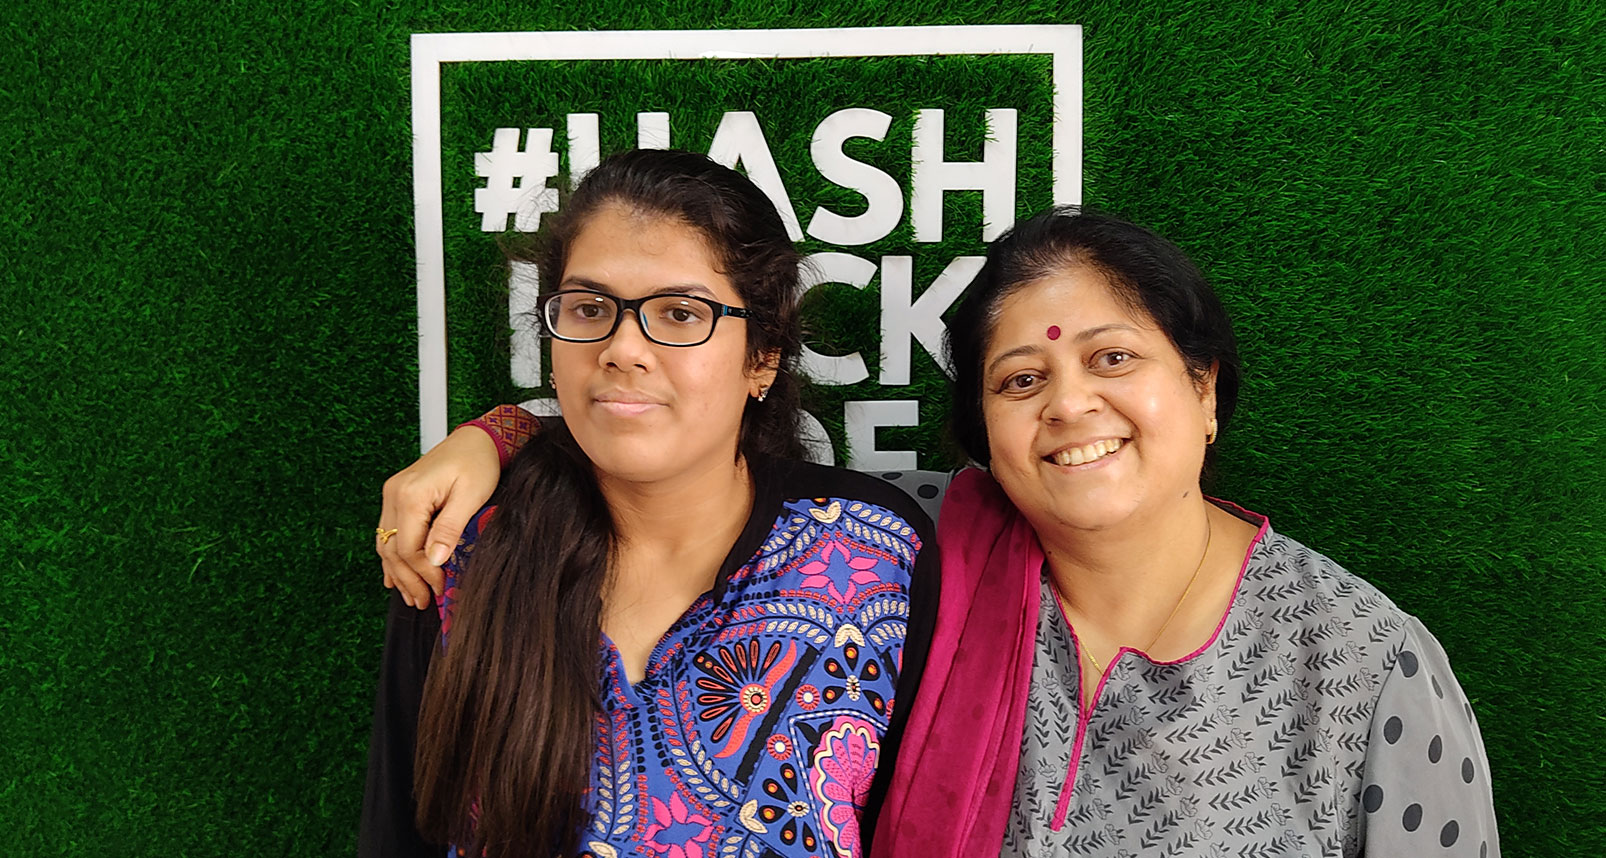 A touch of kindness and empathy – Ankita's story of transforming a wish into a purposeful career